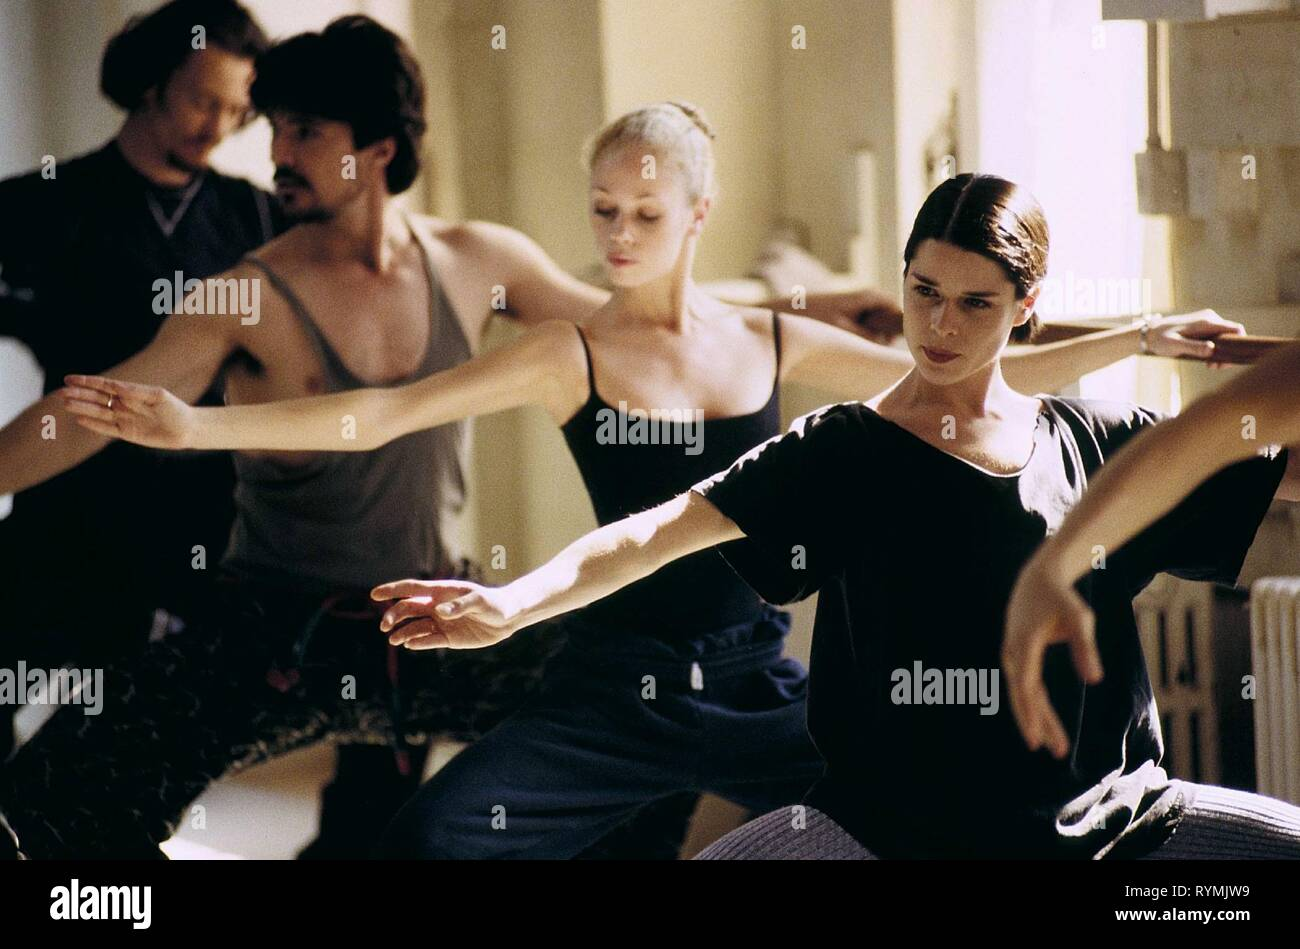 NEVE CAMPBELL, THE COMPANY, 2003 - Stock Image